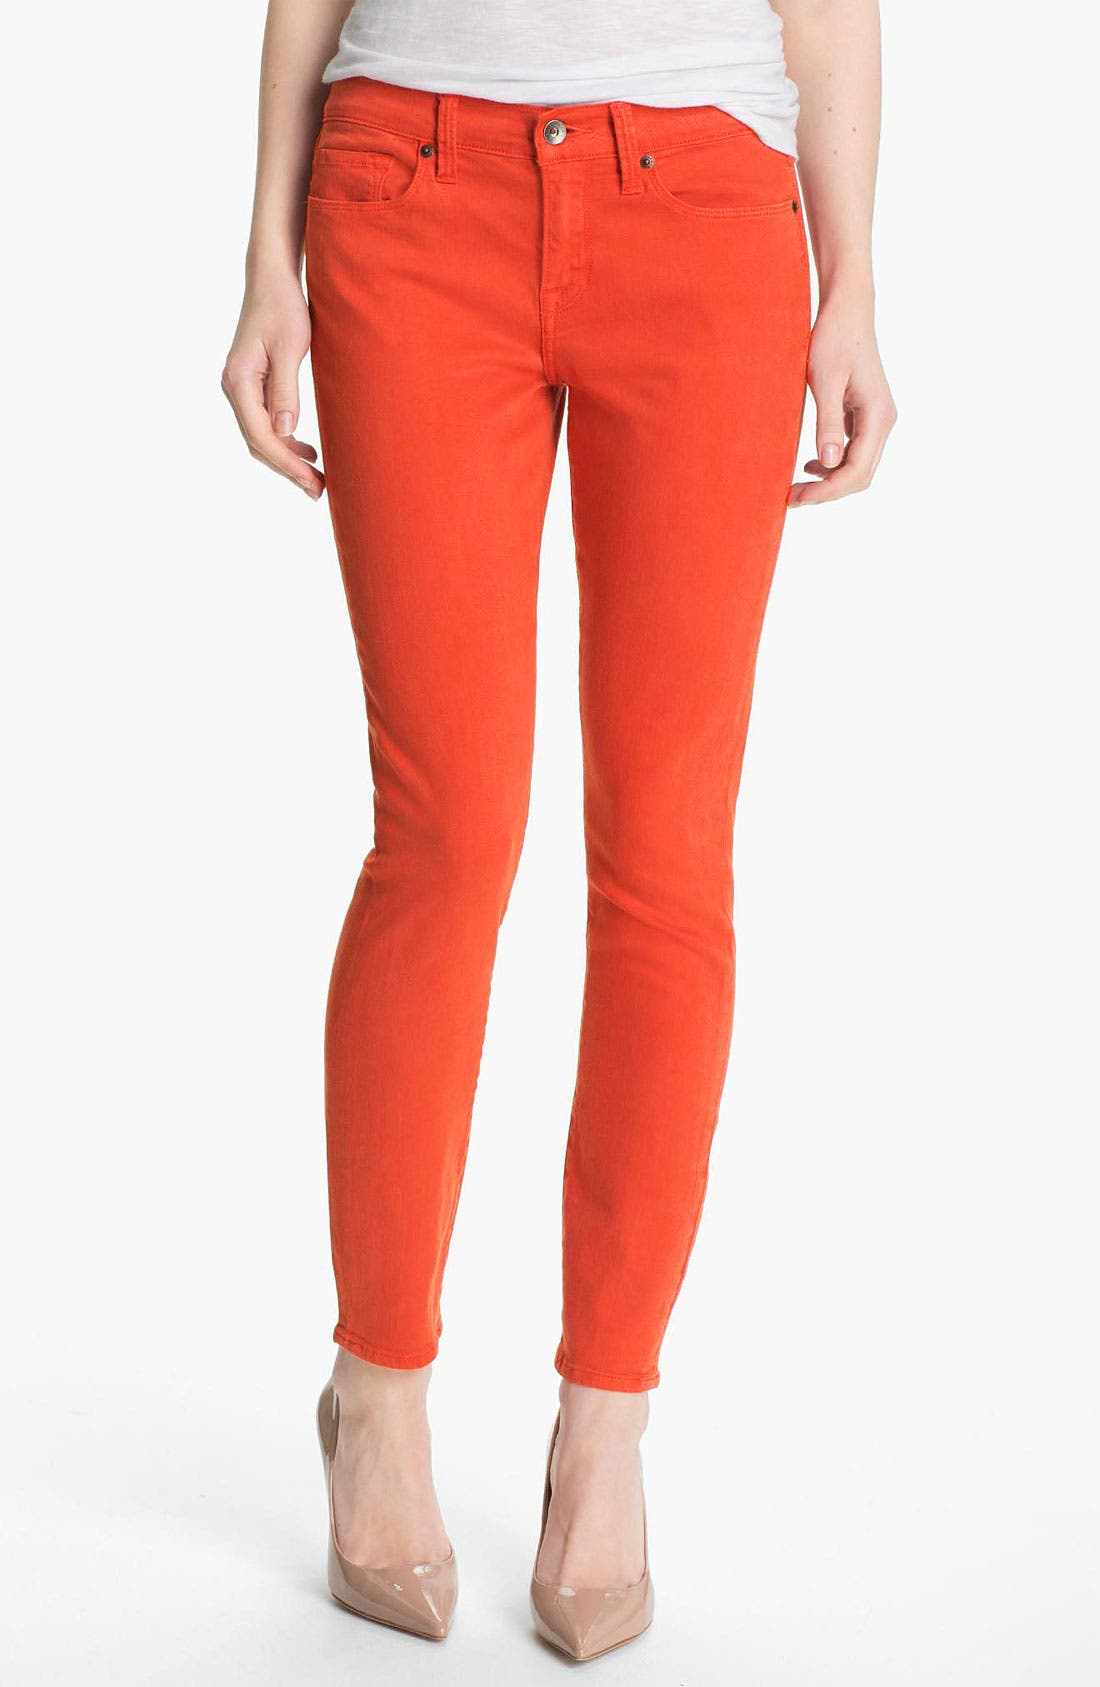 Alternate Image 1 Selected - Lucky Brand 'Sofia' Colored Denim Skinny Jeans